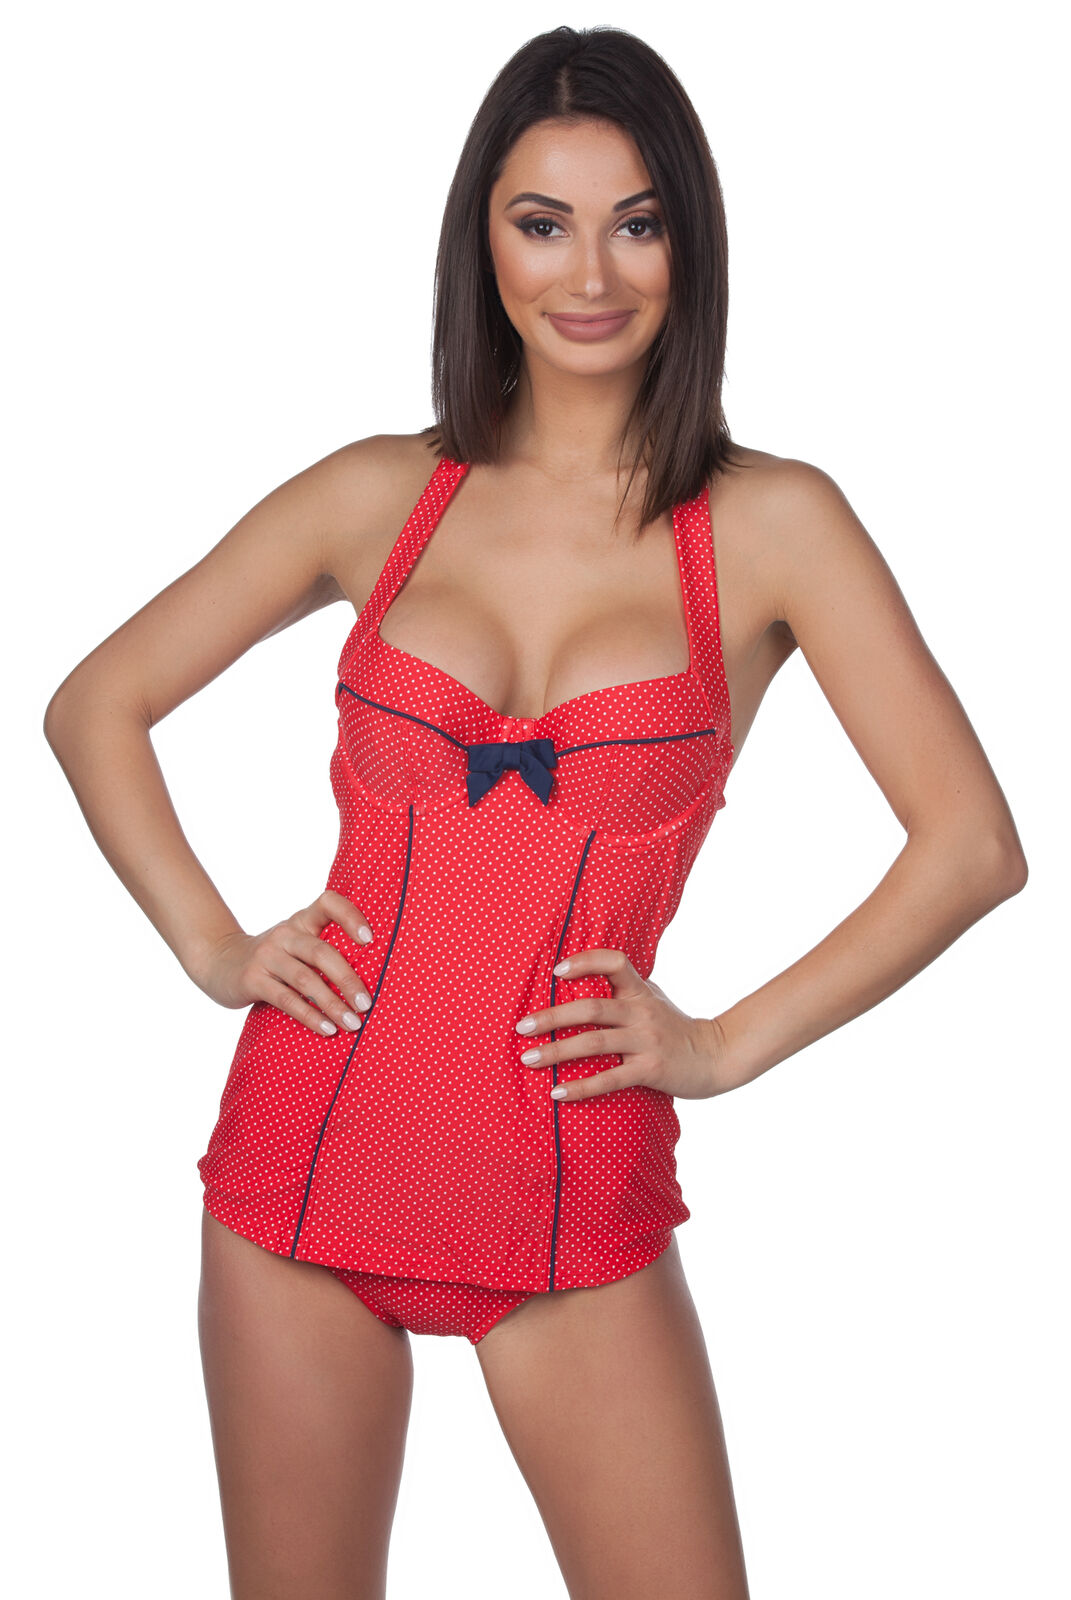 Panache Swim Retro Britt Halter Dotted Wired One-Piece Swimsuit